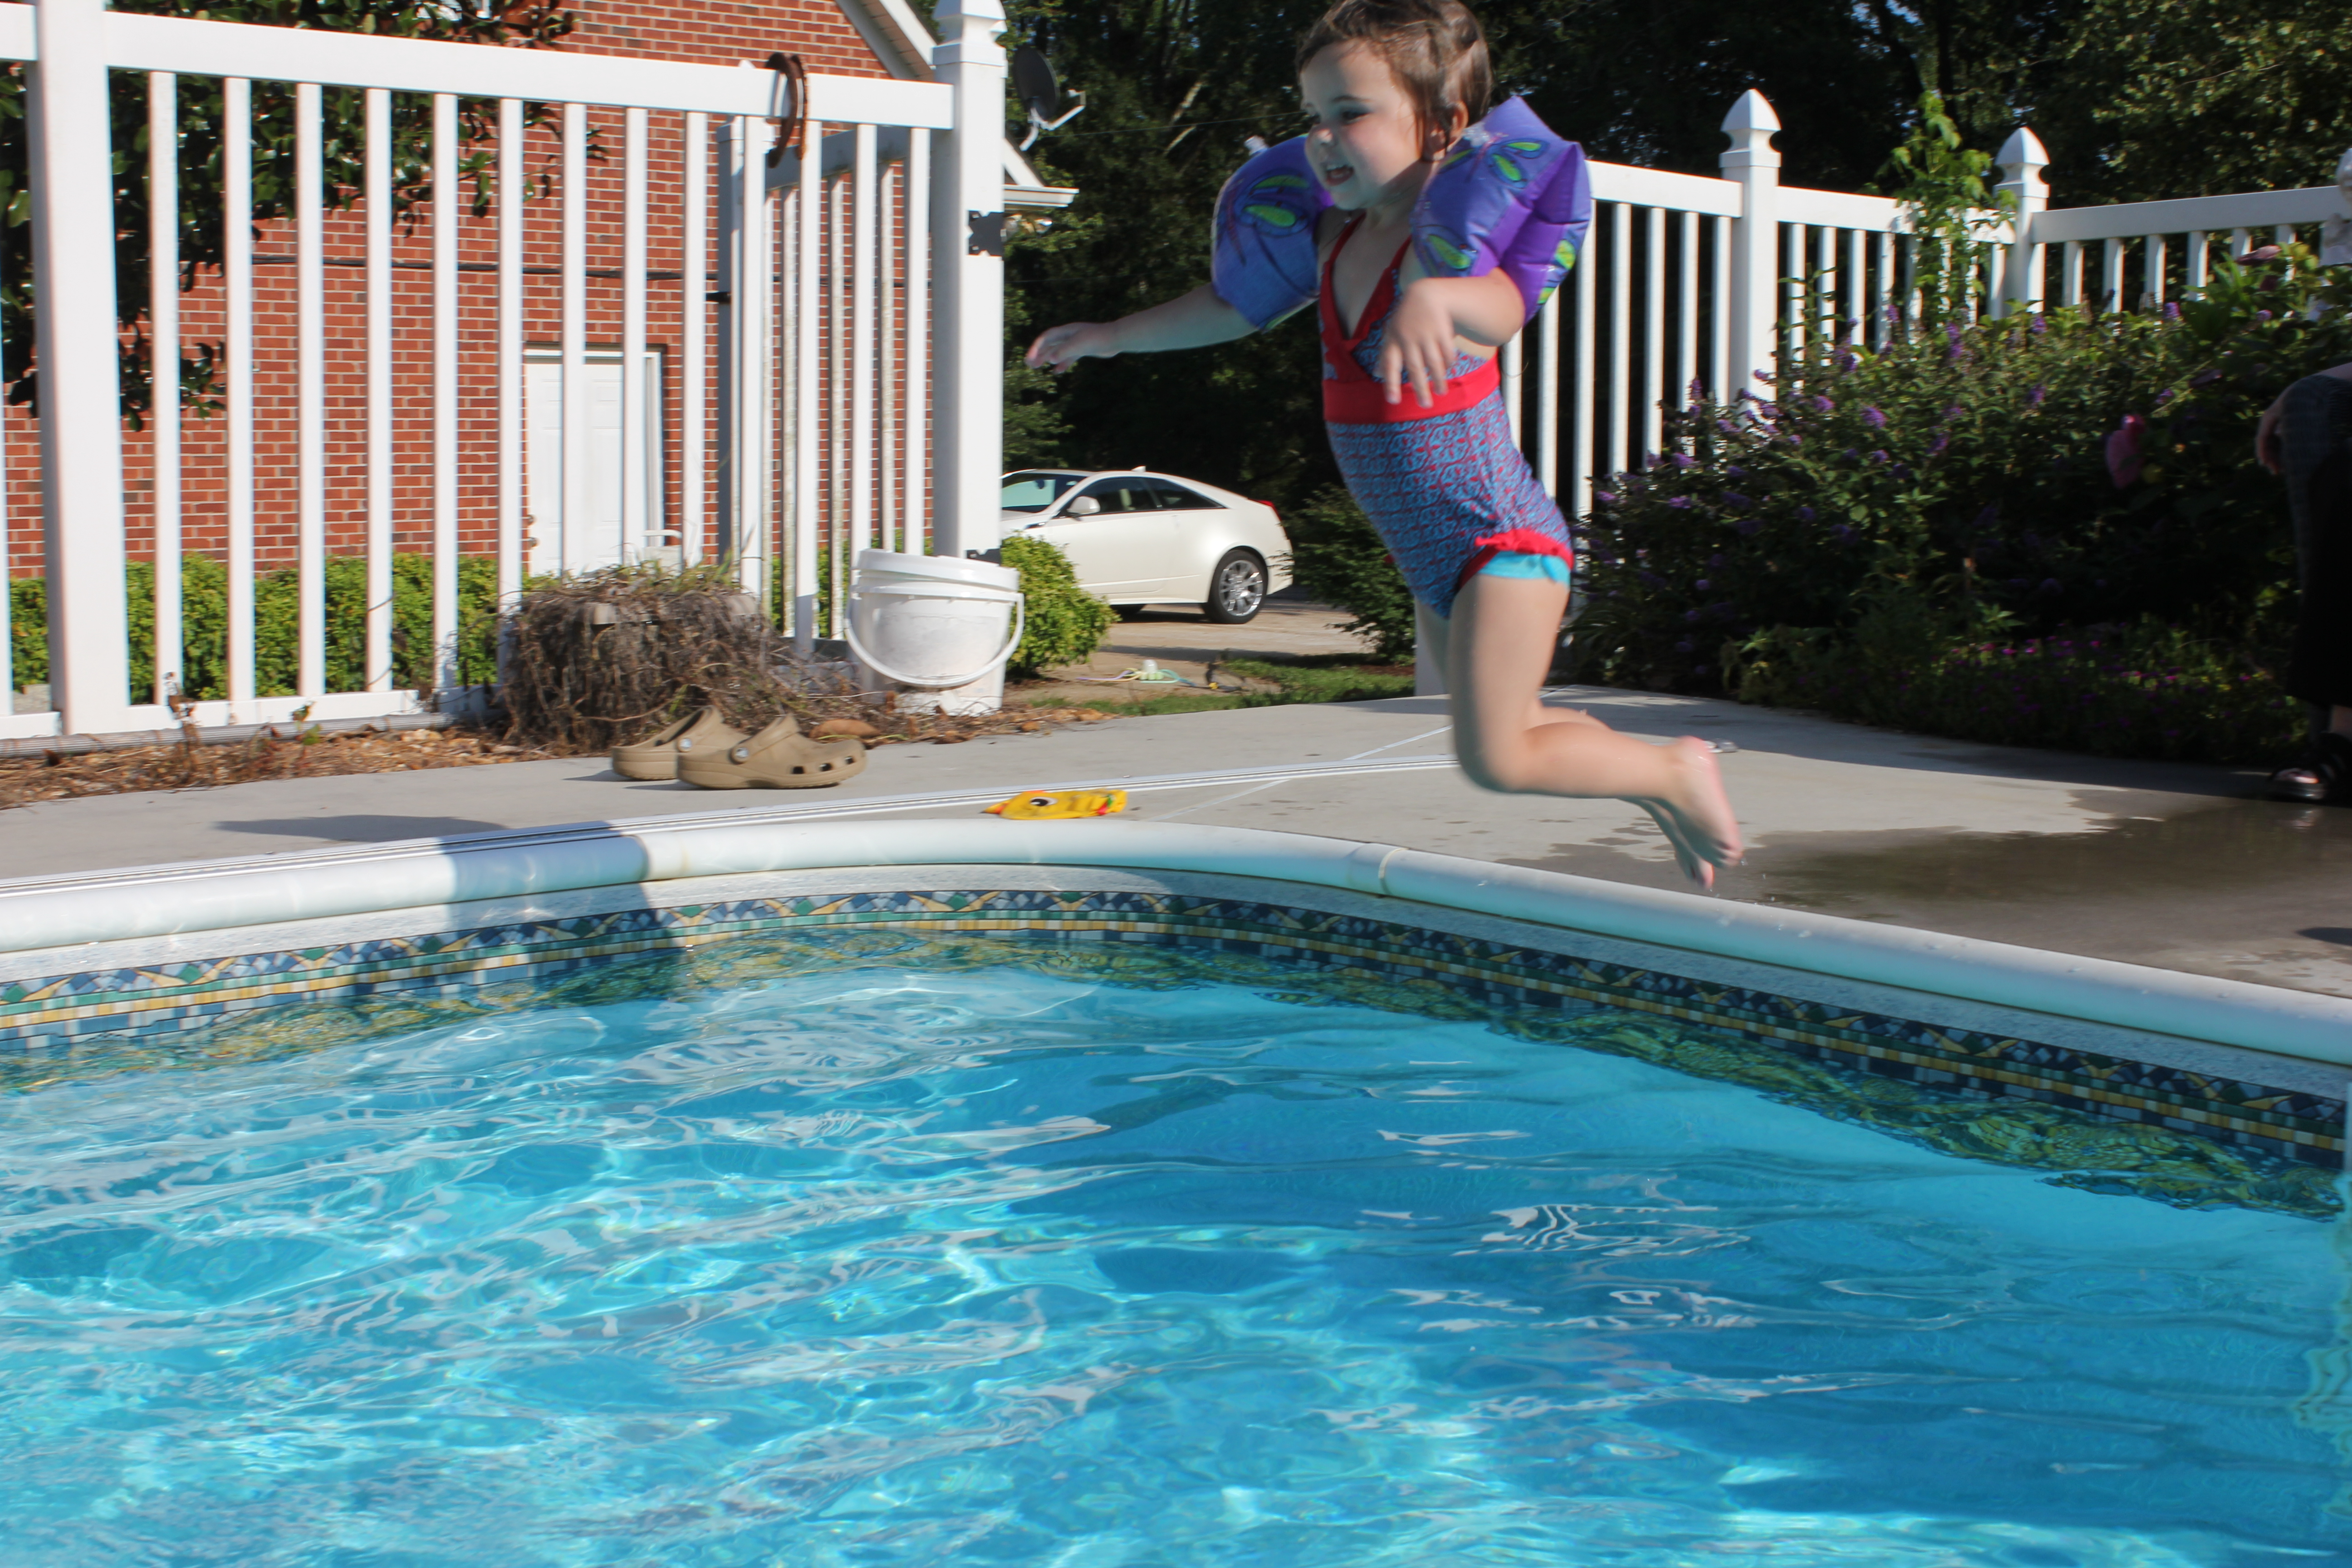 Ammon Swimming Pool: Parenting With Pride